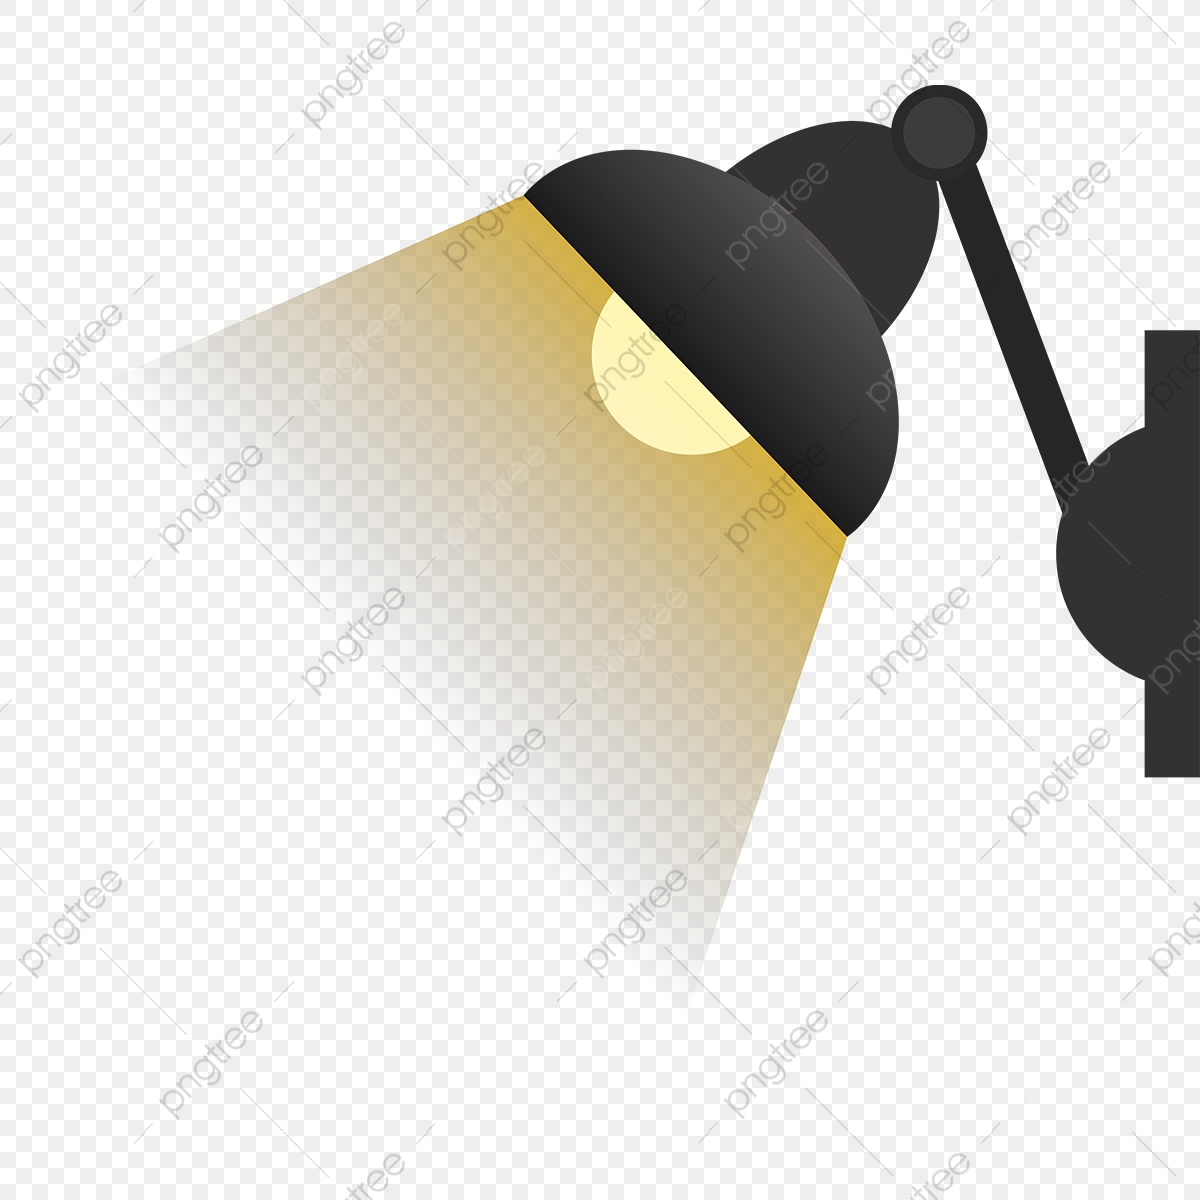 Wall Light Lamp Wall Light Lamp Light Png And Vector With Transparent Background For Free Download